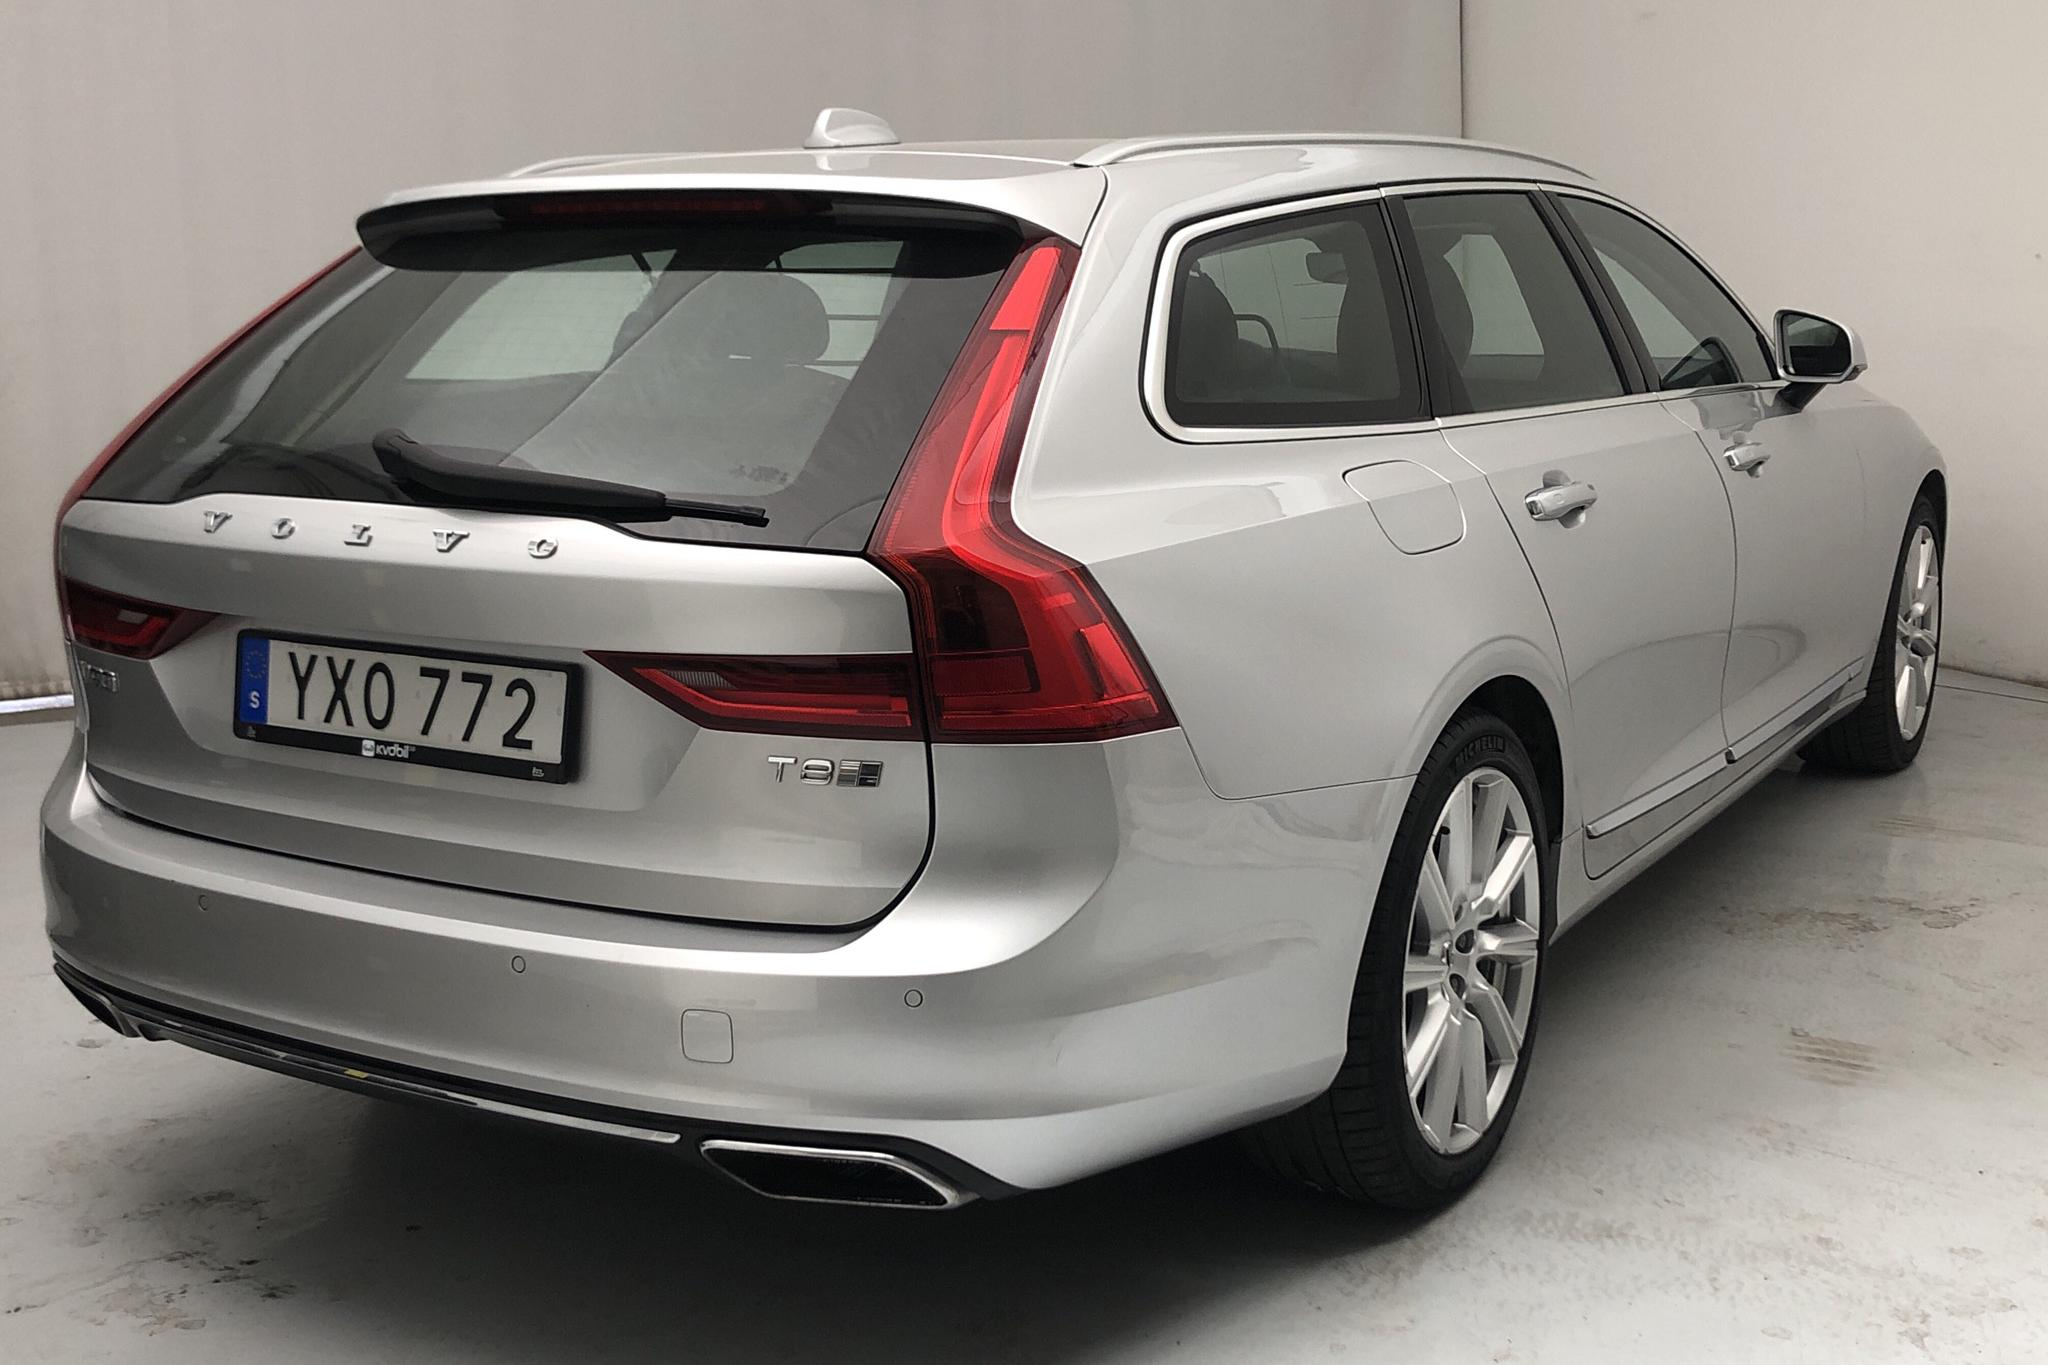 Volvo V90 T8 AWD Twin Engine (407hk) - 58 700 km - Automatic - silver - 2018